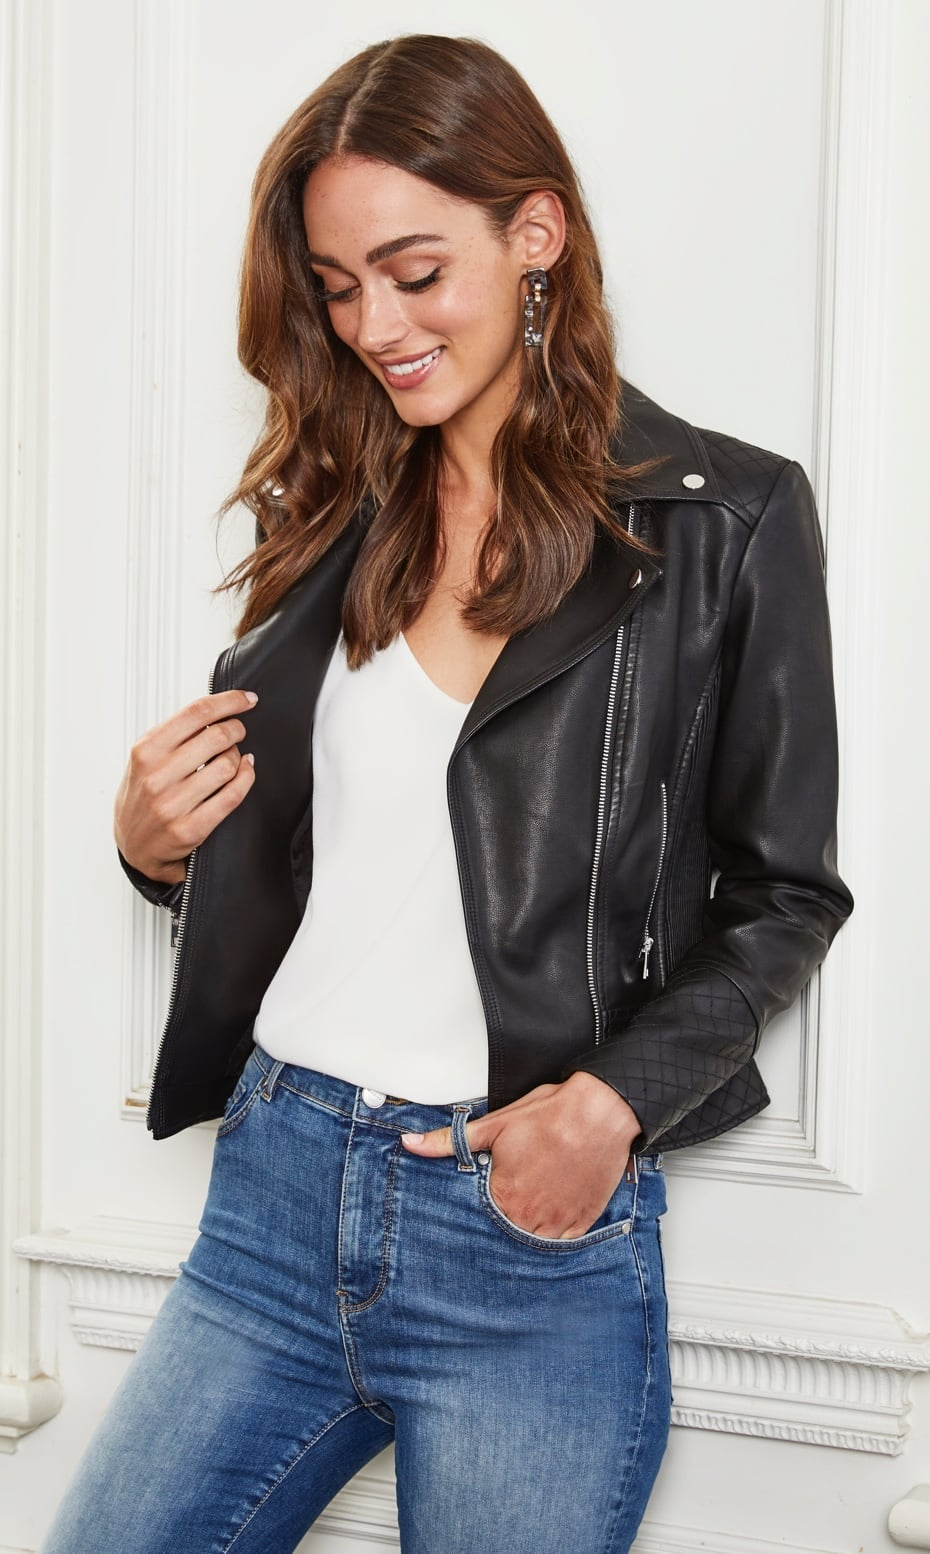 The Leather-Look Jackets